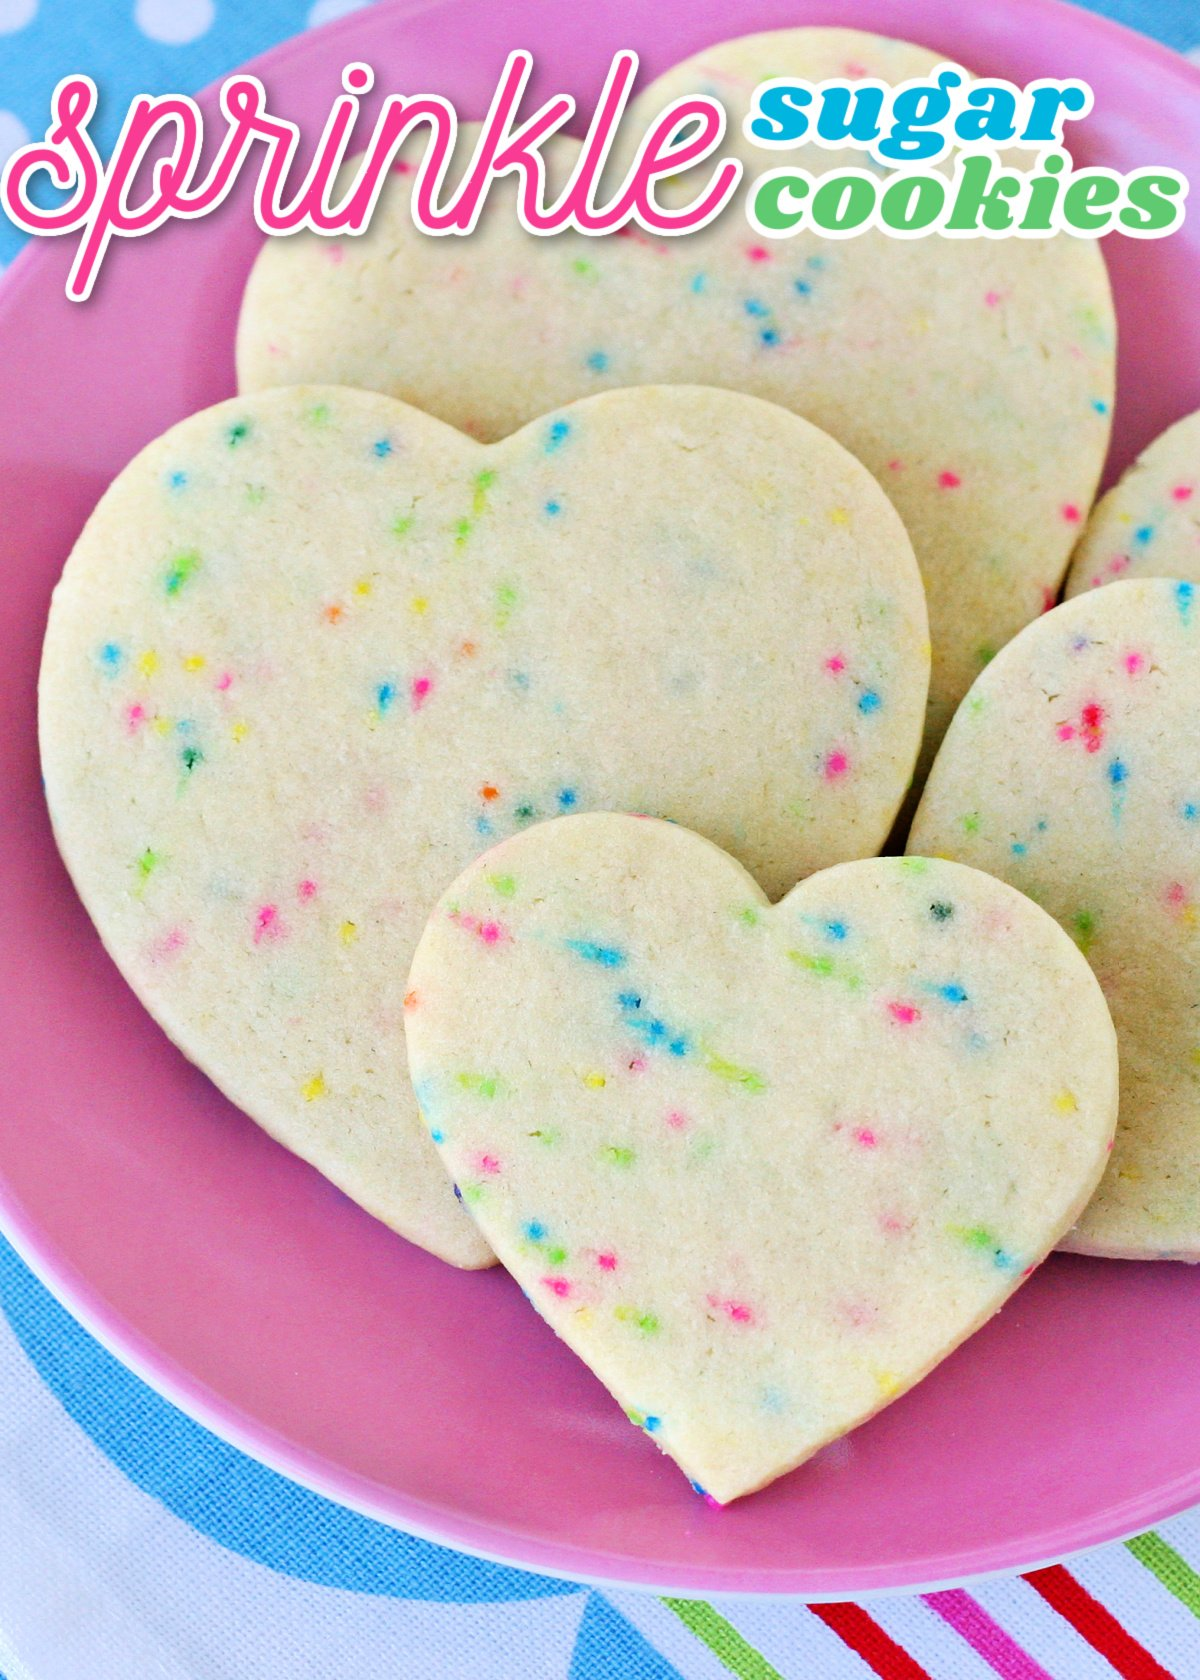 sugar cookies with sprinkles cut into heart shapes on pink plate with title overlay at top of image